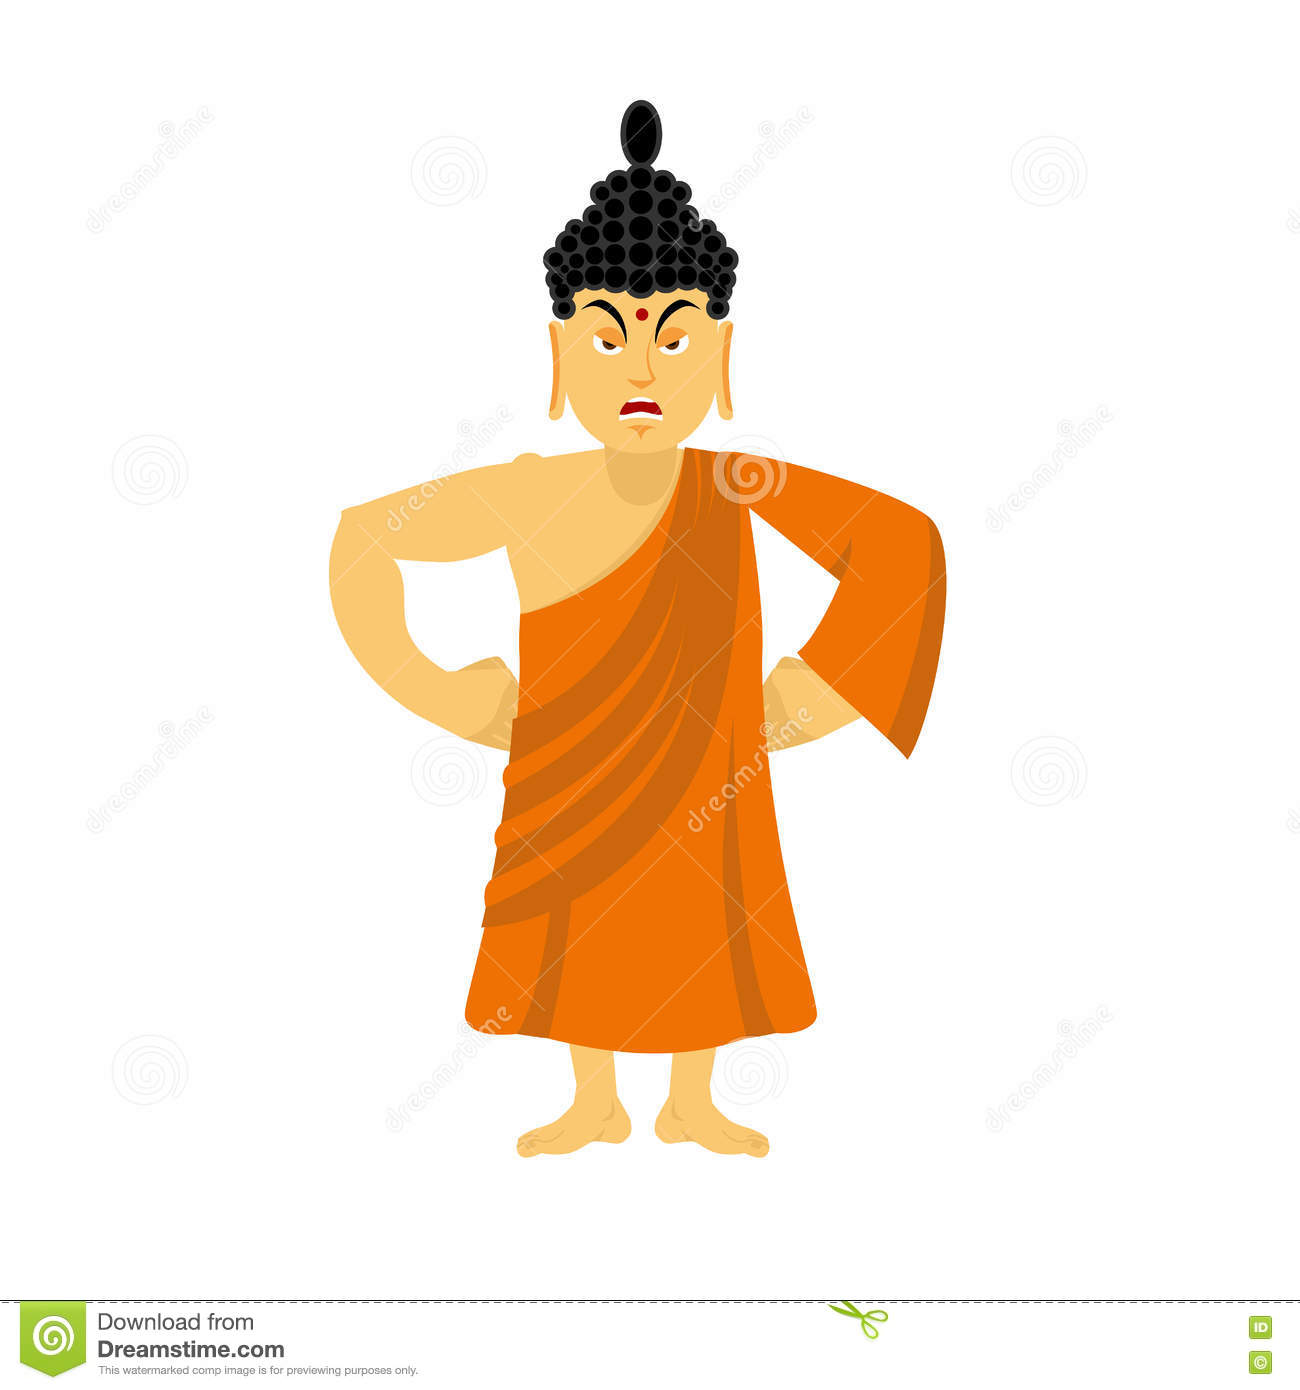 buddhist single men in alexander Is sexism intrinsic to buddhism, or did buddhist institutions absorb sexism from asian culture with men and women following the same rules in asia.